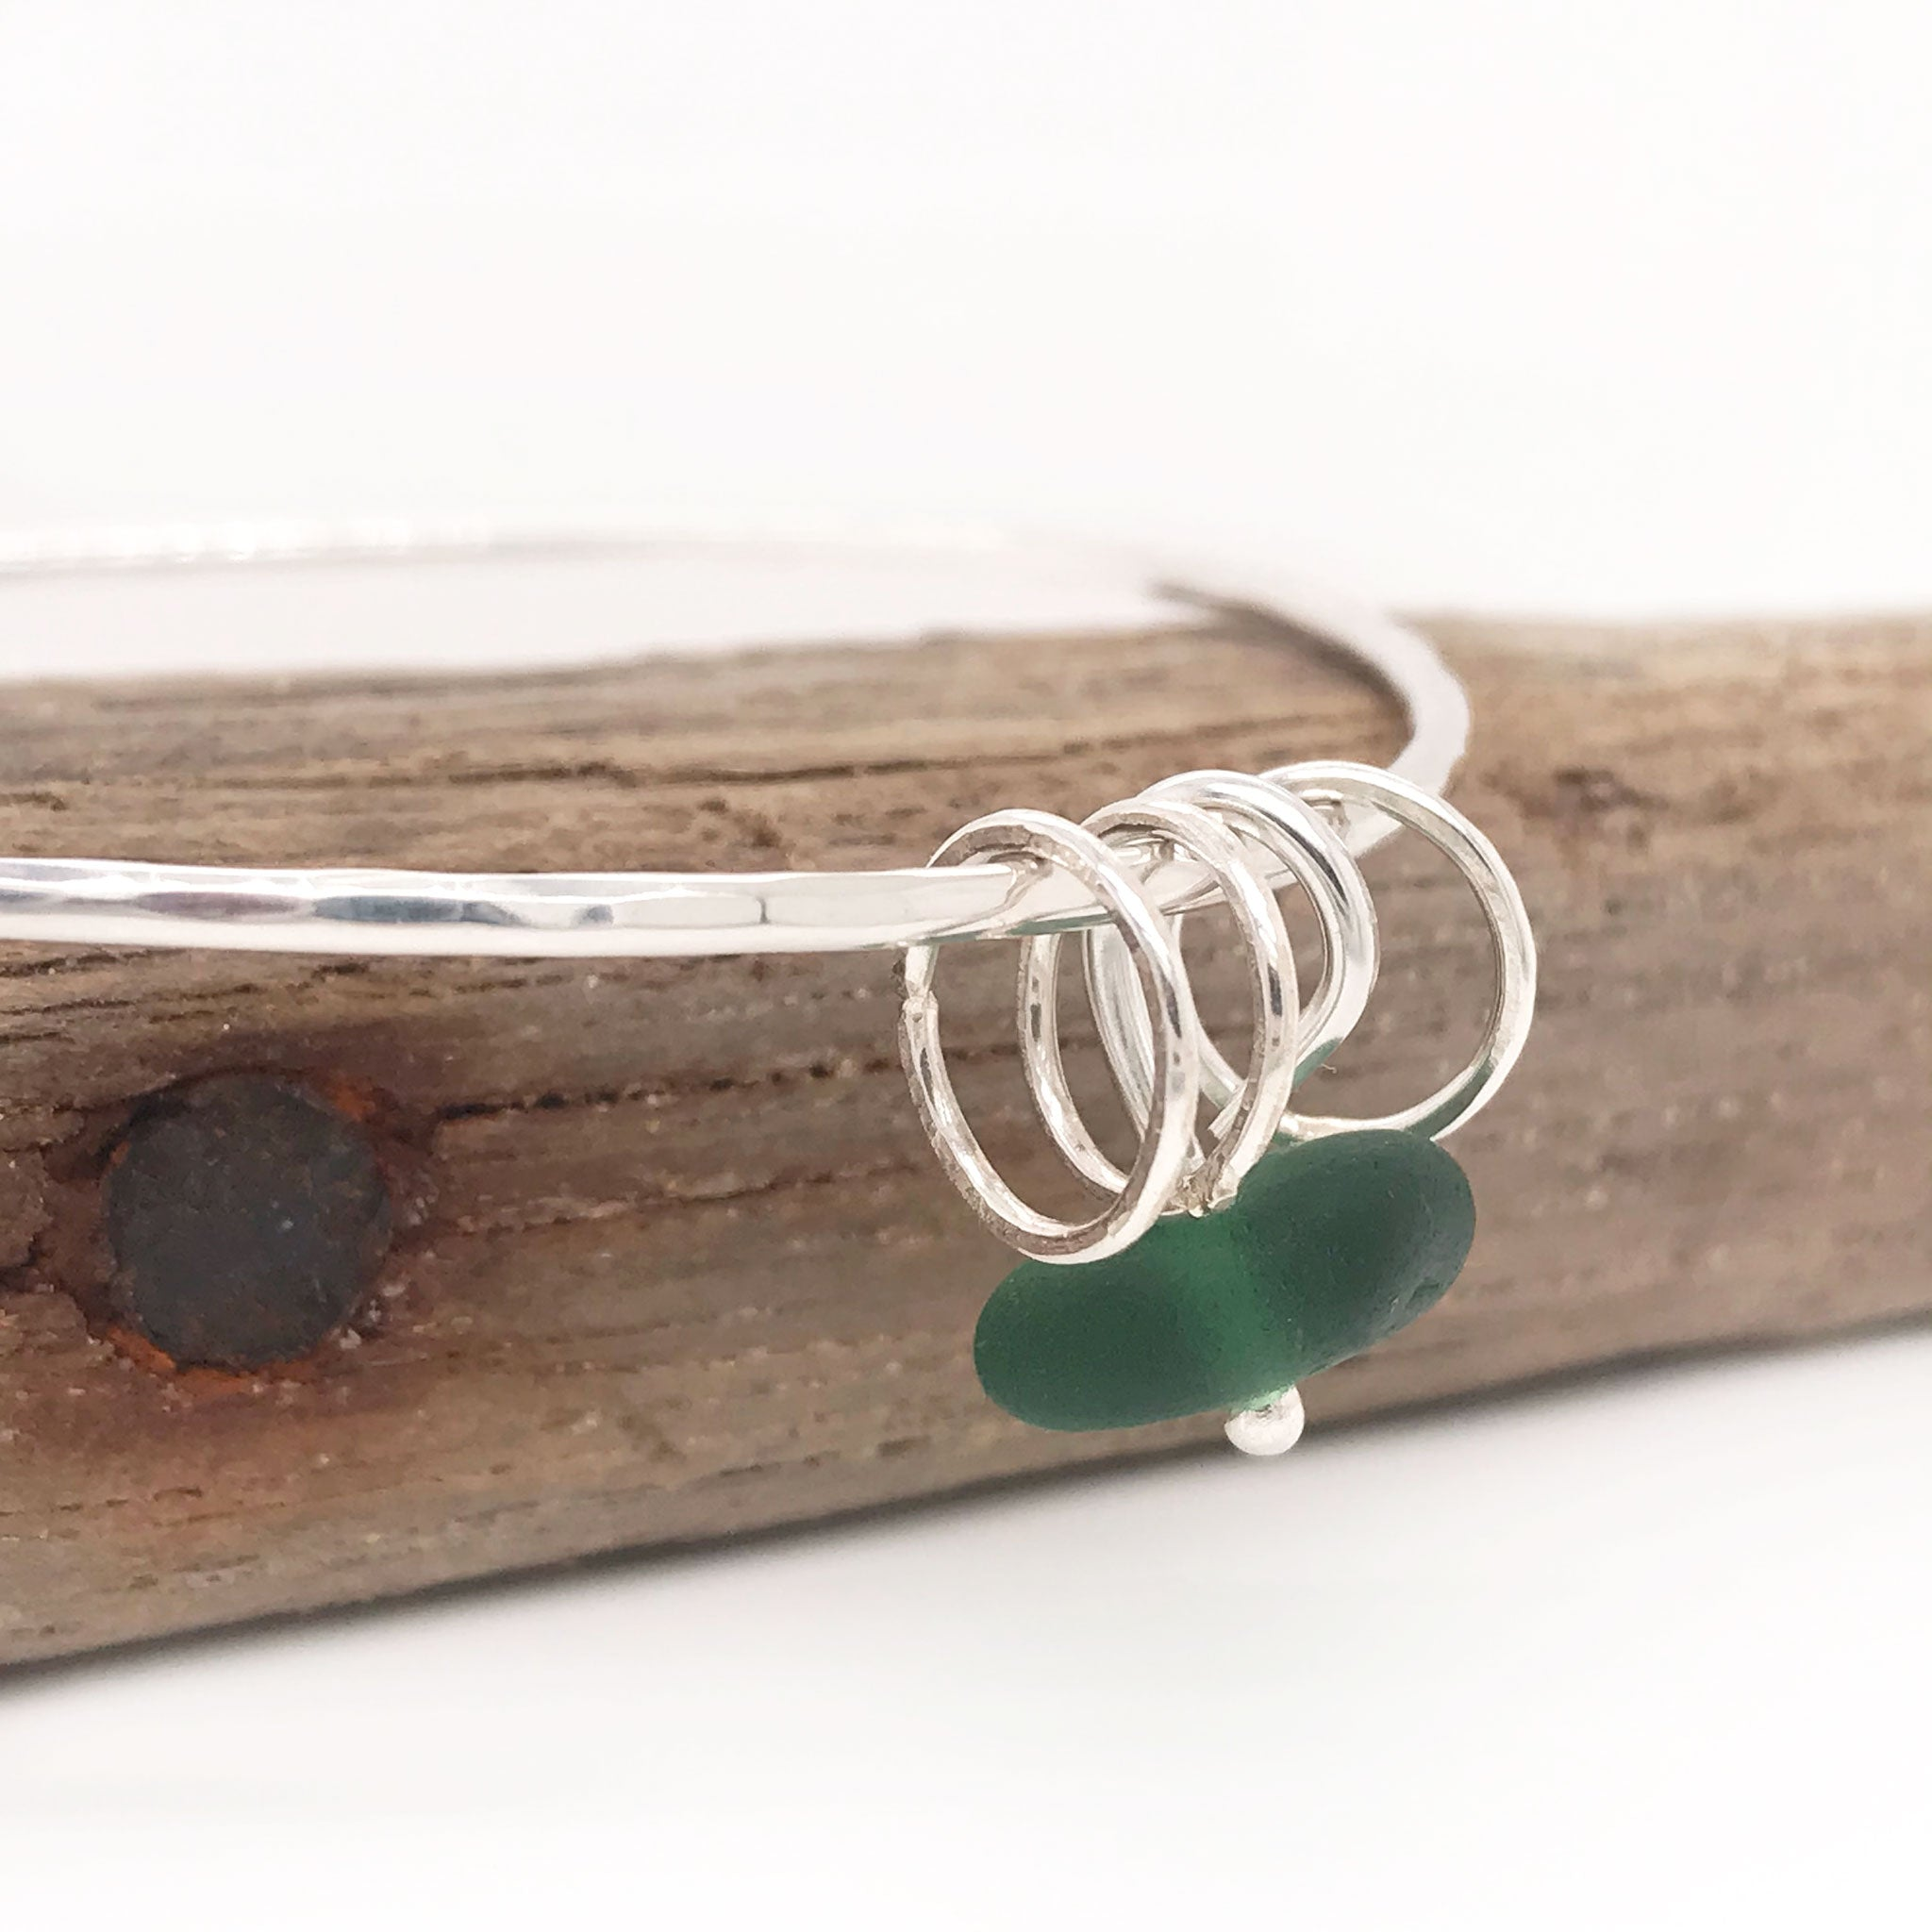 green seaglass bangle silver Kriket broadhurst jewelry